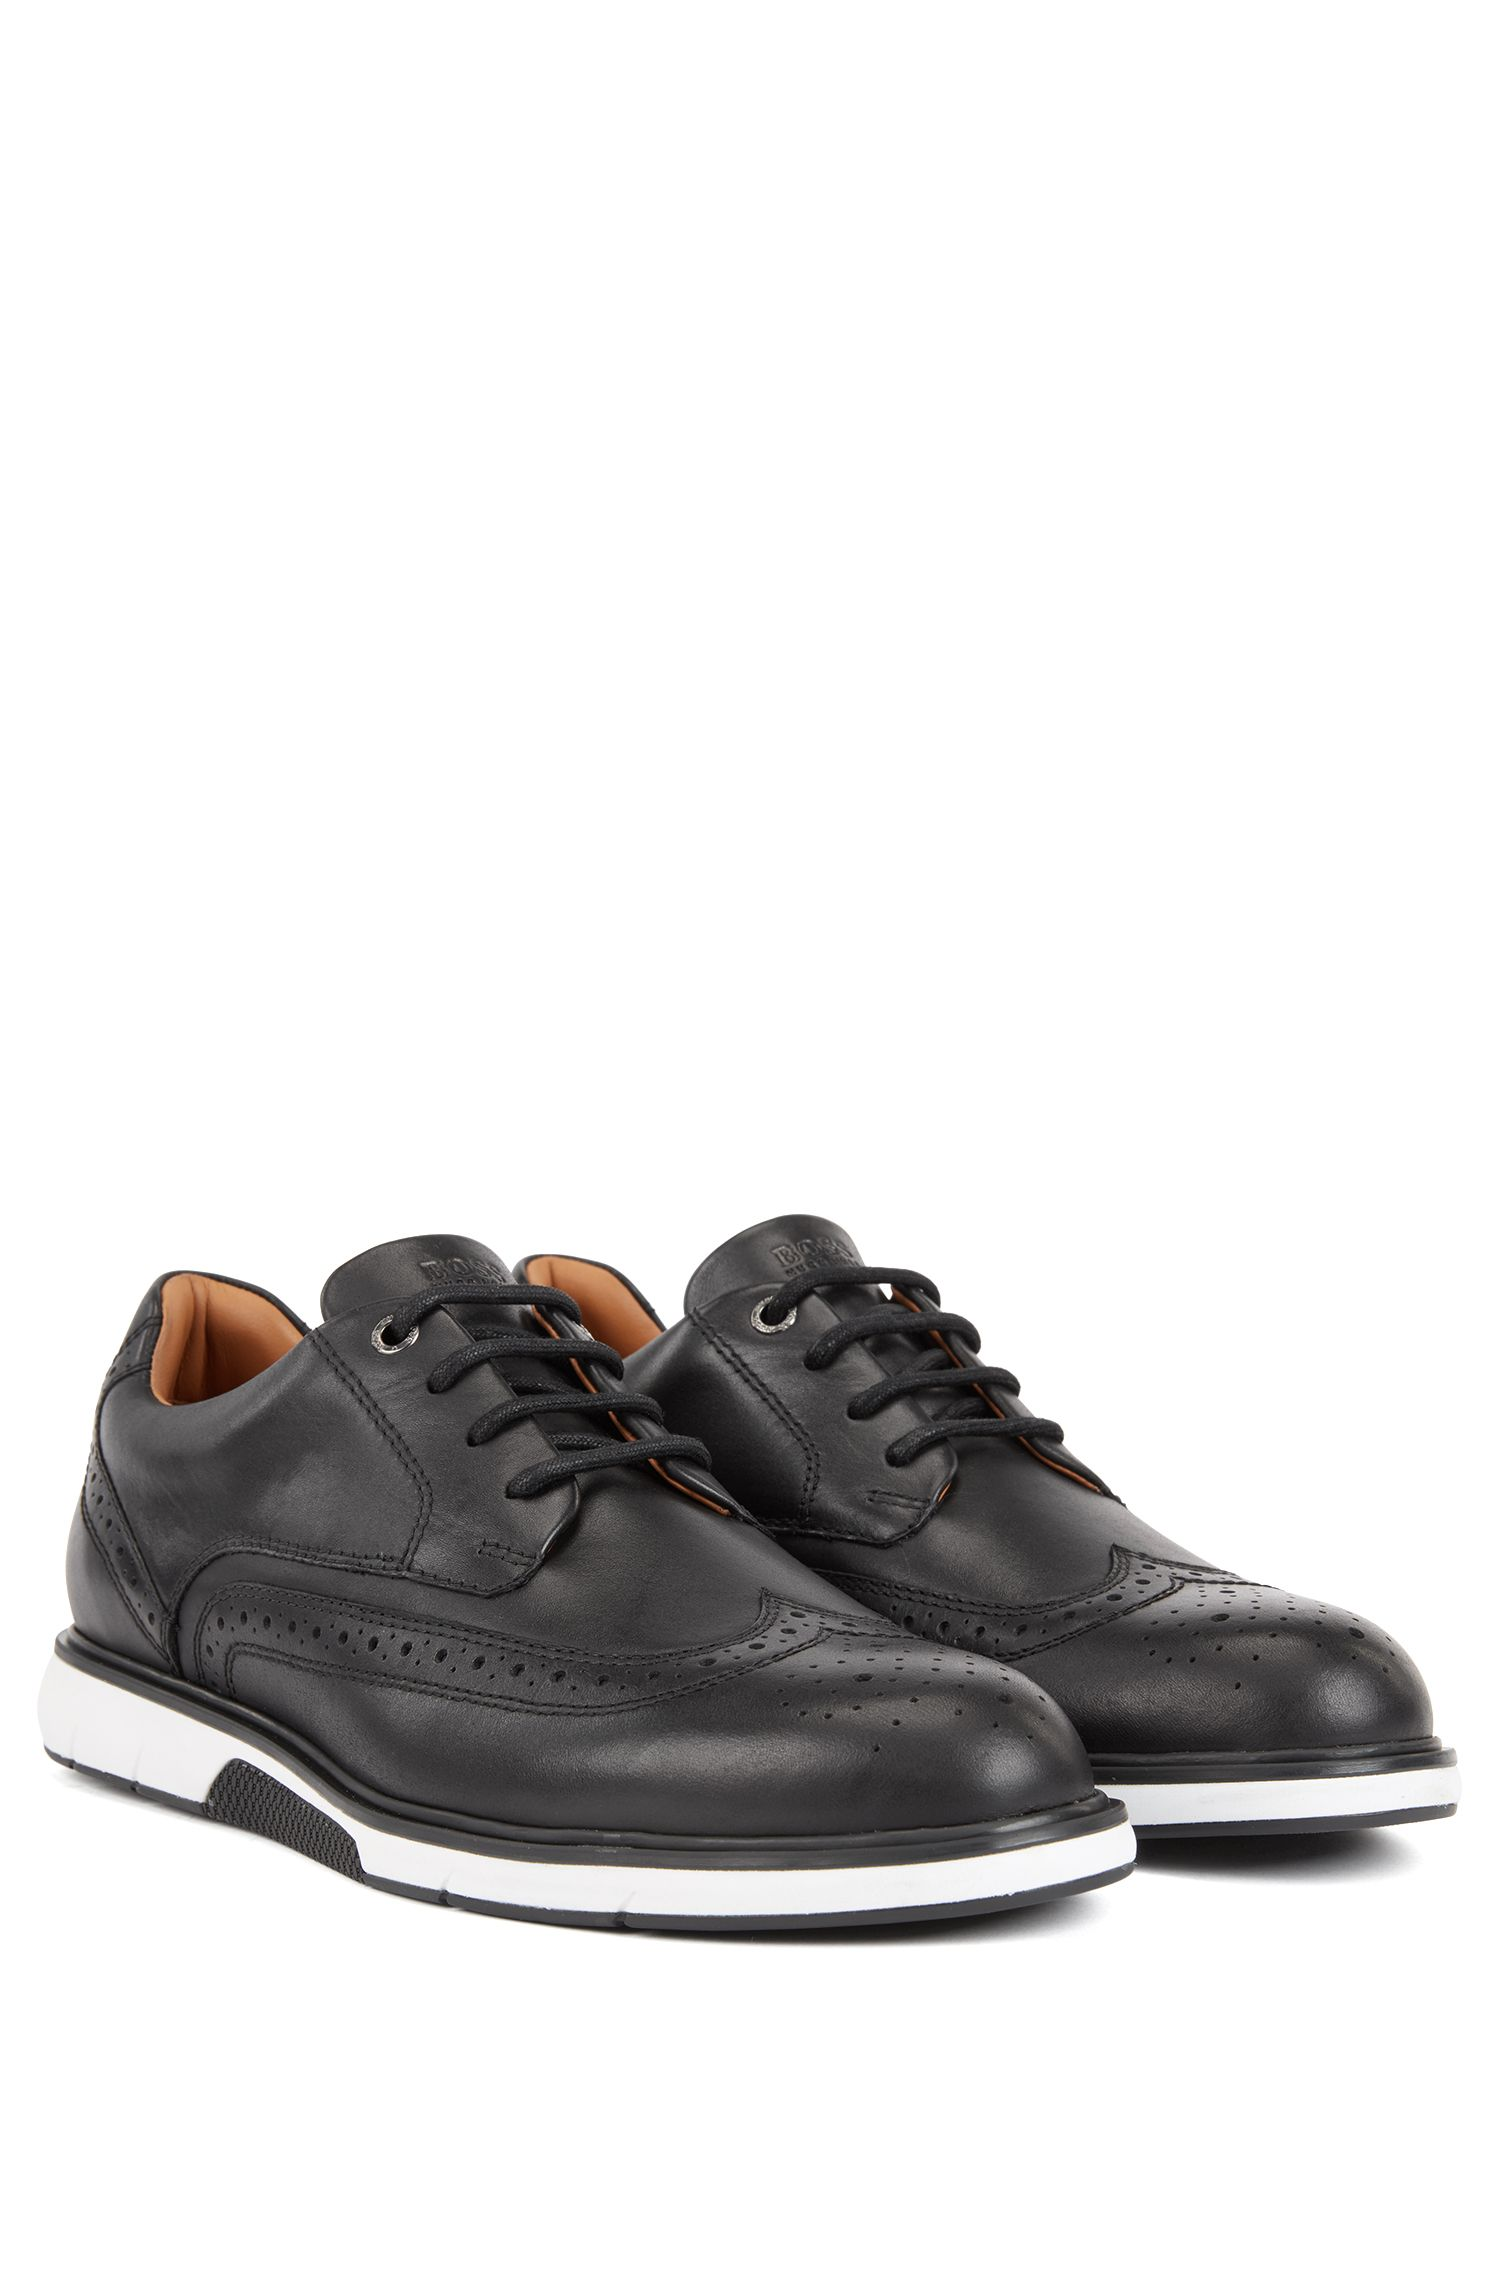 Leather Derby shoes with sneaker-style sole, Black